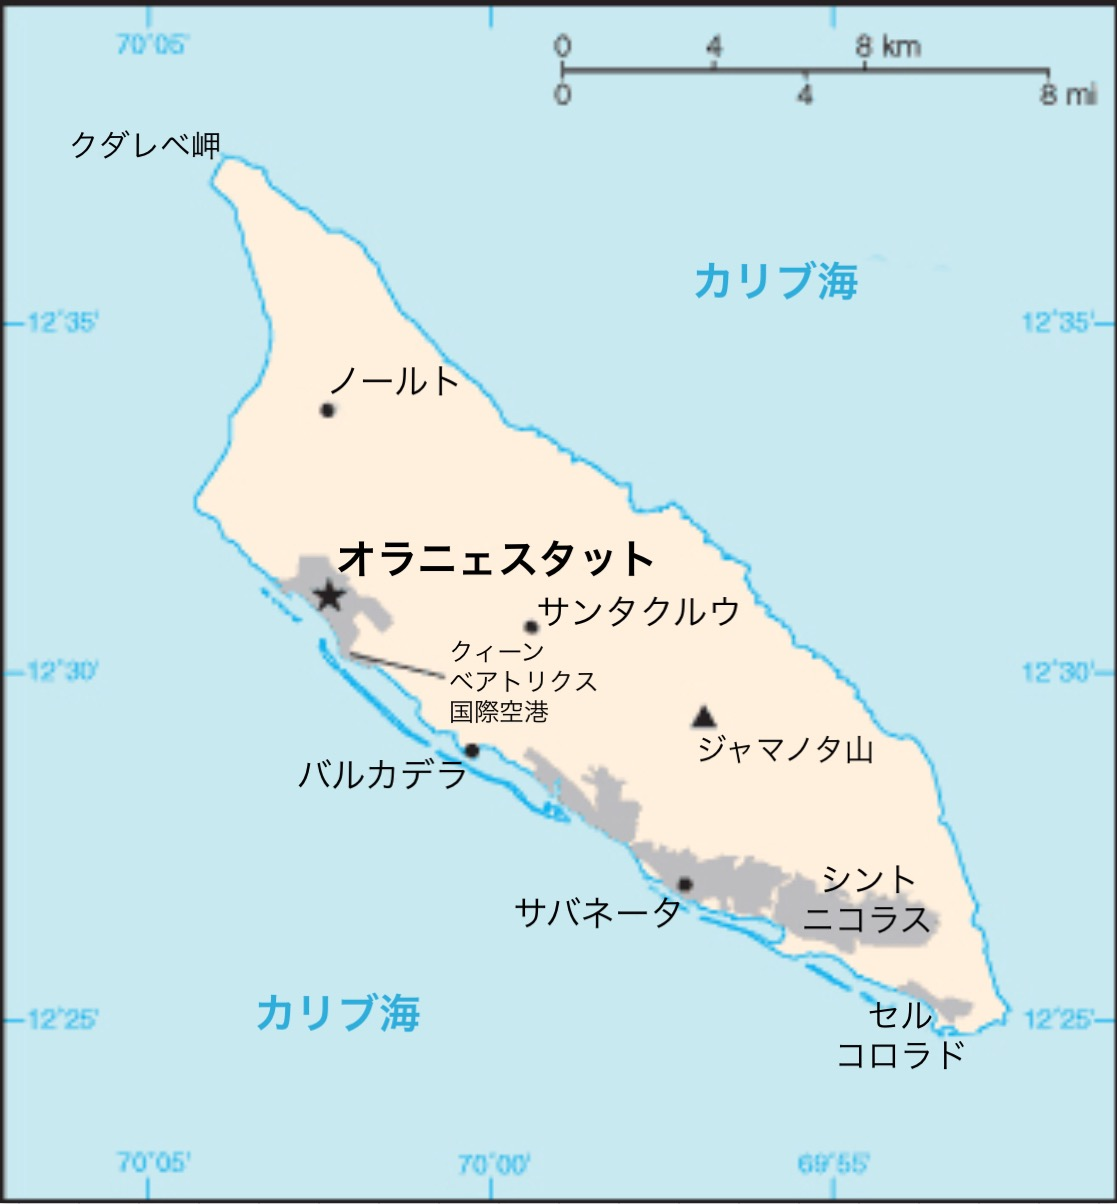 File:Aruba-map-ja.jpeg - Wikimedia Commons